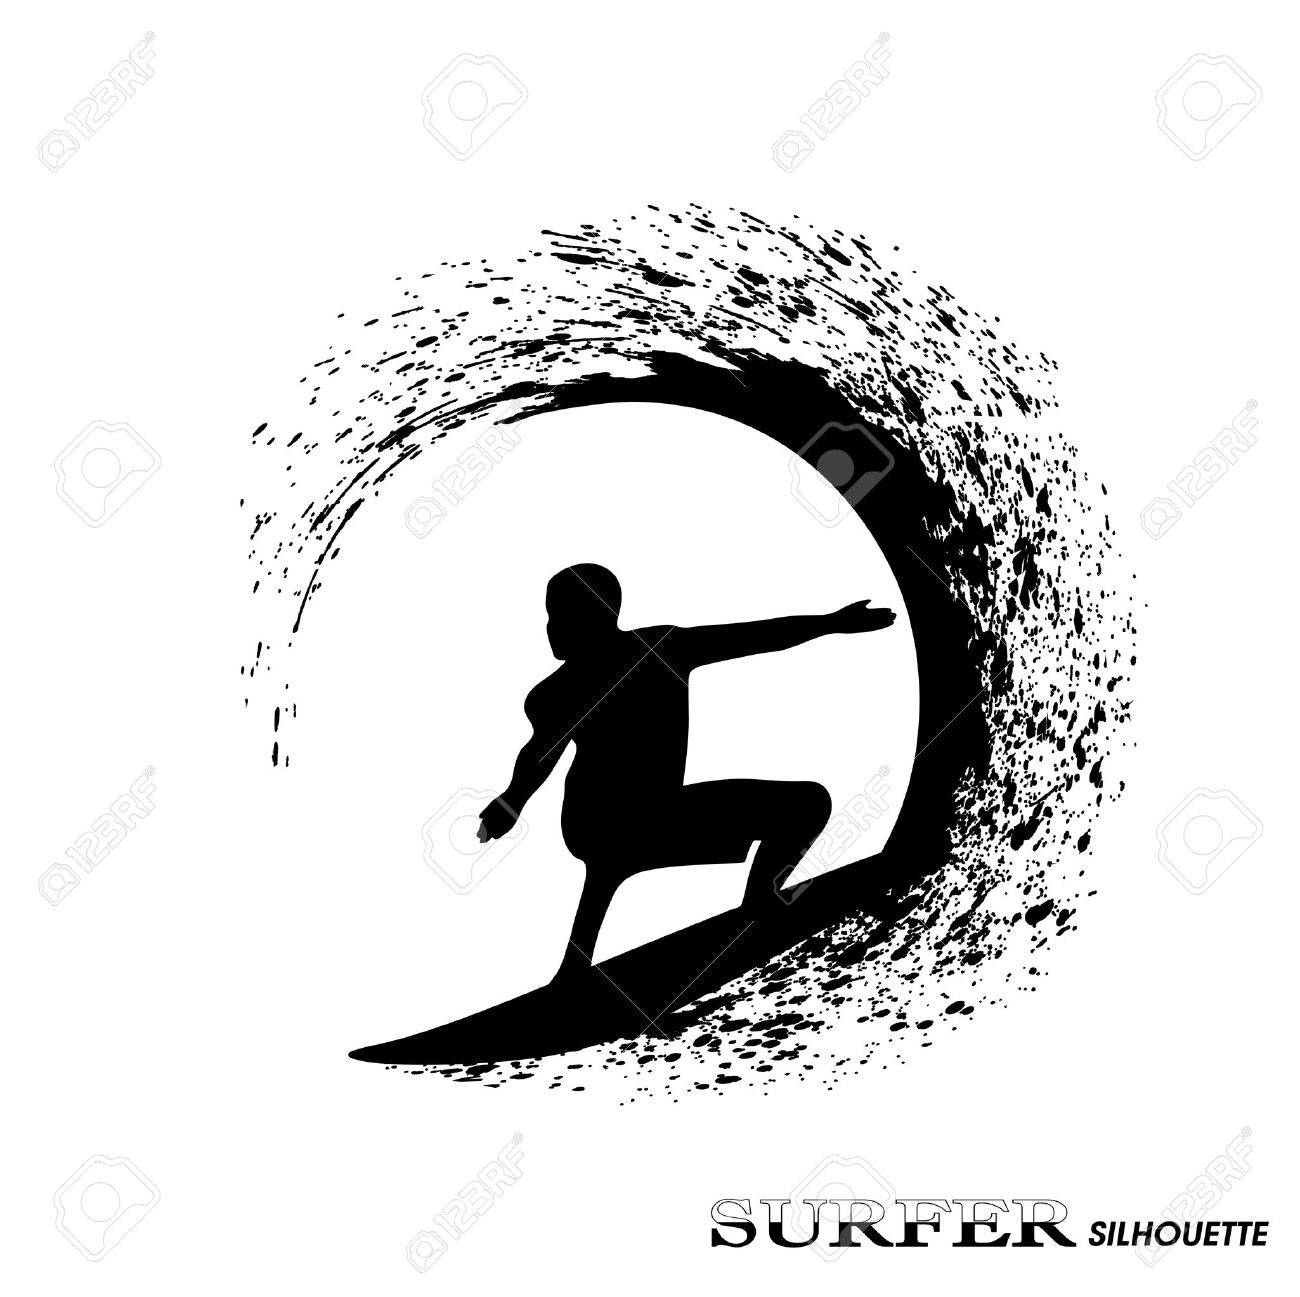 Surfing Clipart Black And White - Surfer Clip Art , Free Transparent Clipart  - ClipartKey